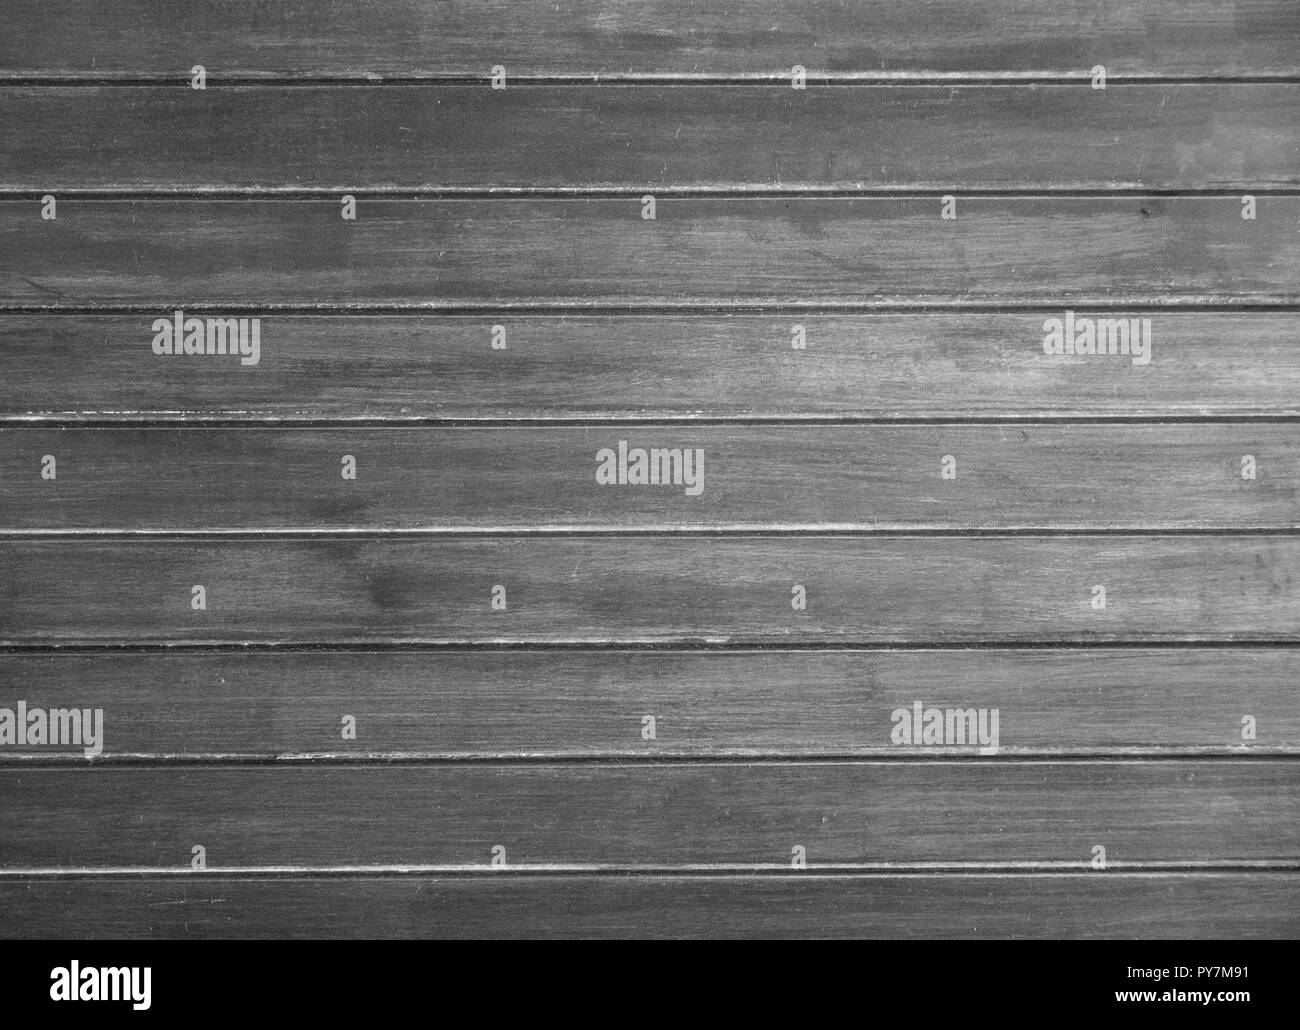 Wooden wall with horizontal planks. Close up of an old wooden fence panels - Stock Image